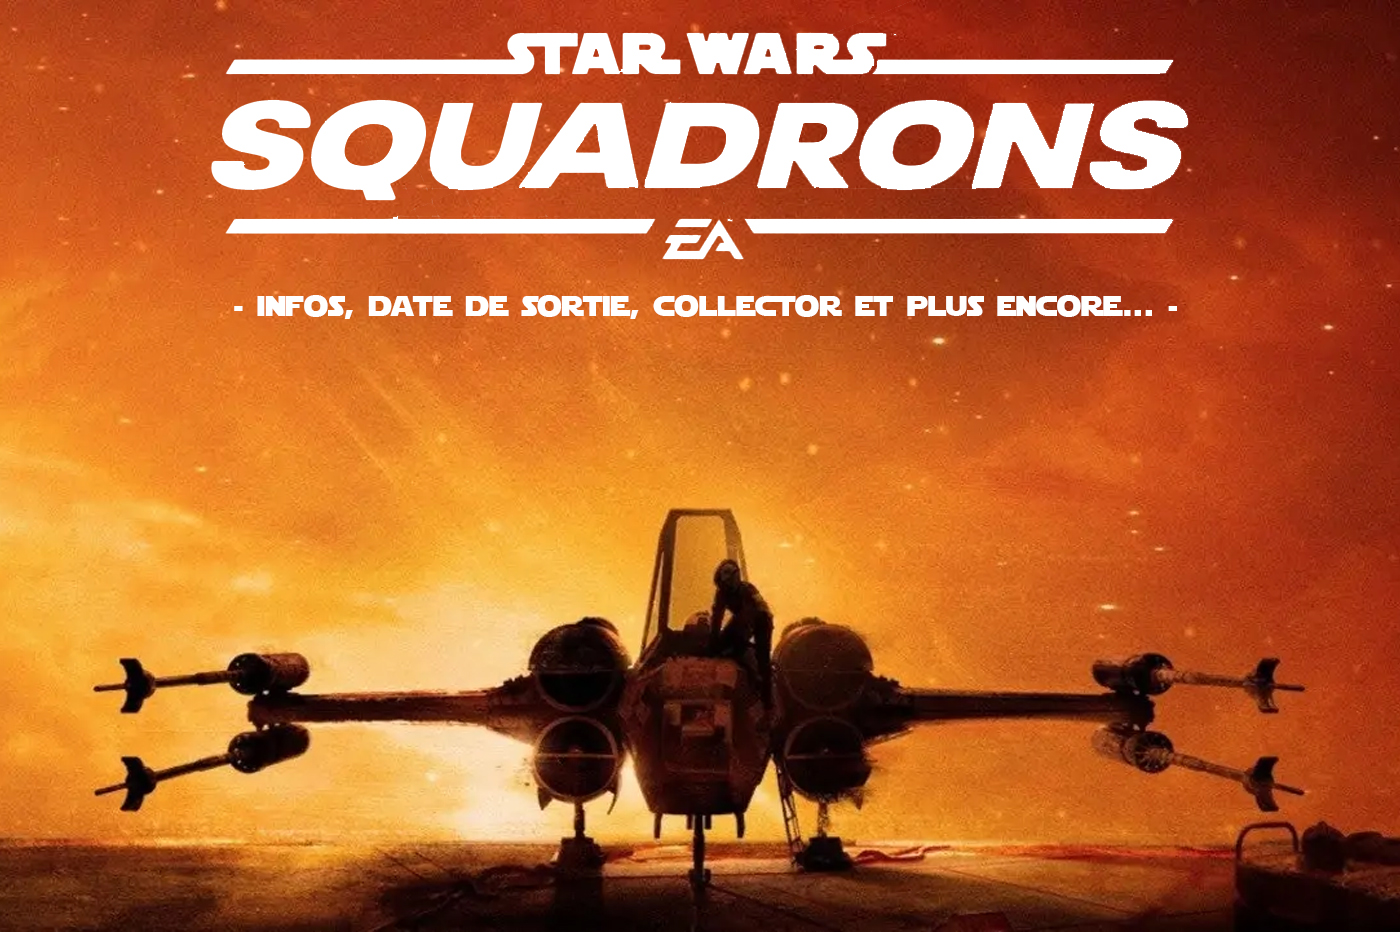 Star Wars Squadrons Infos, date, collector et plus